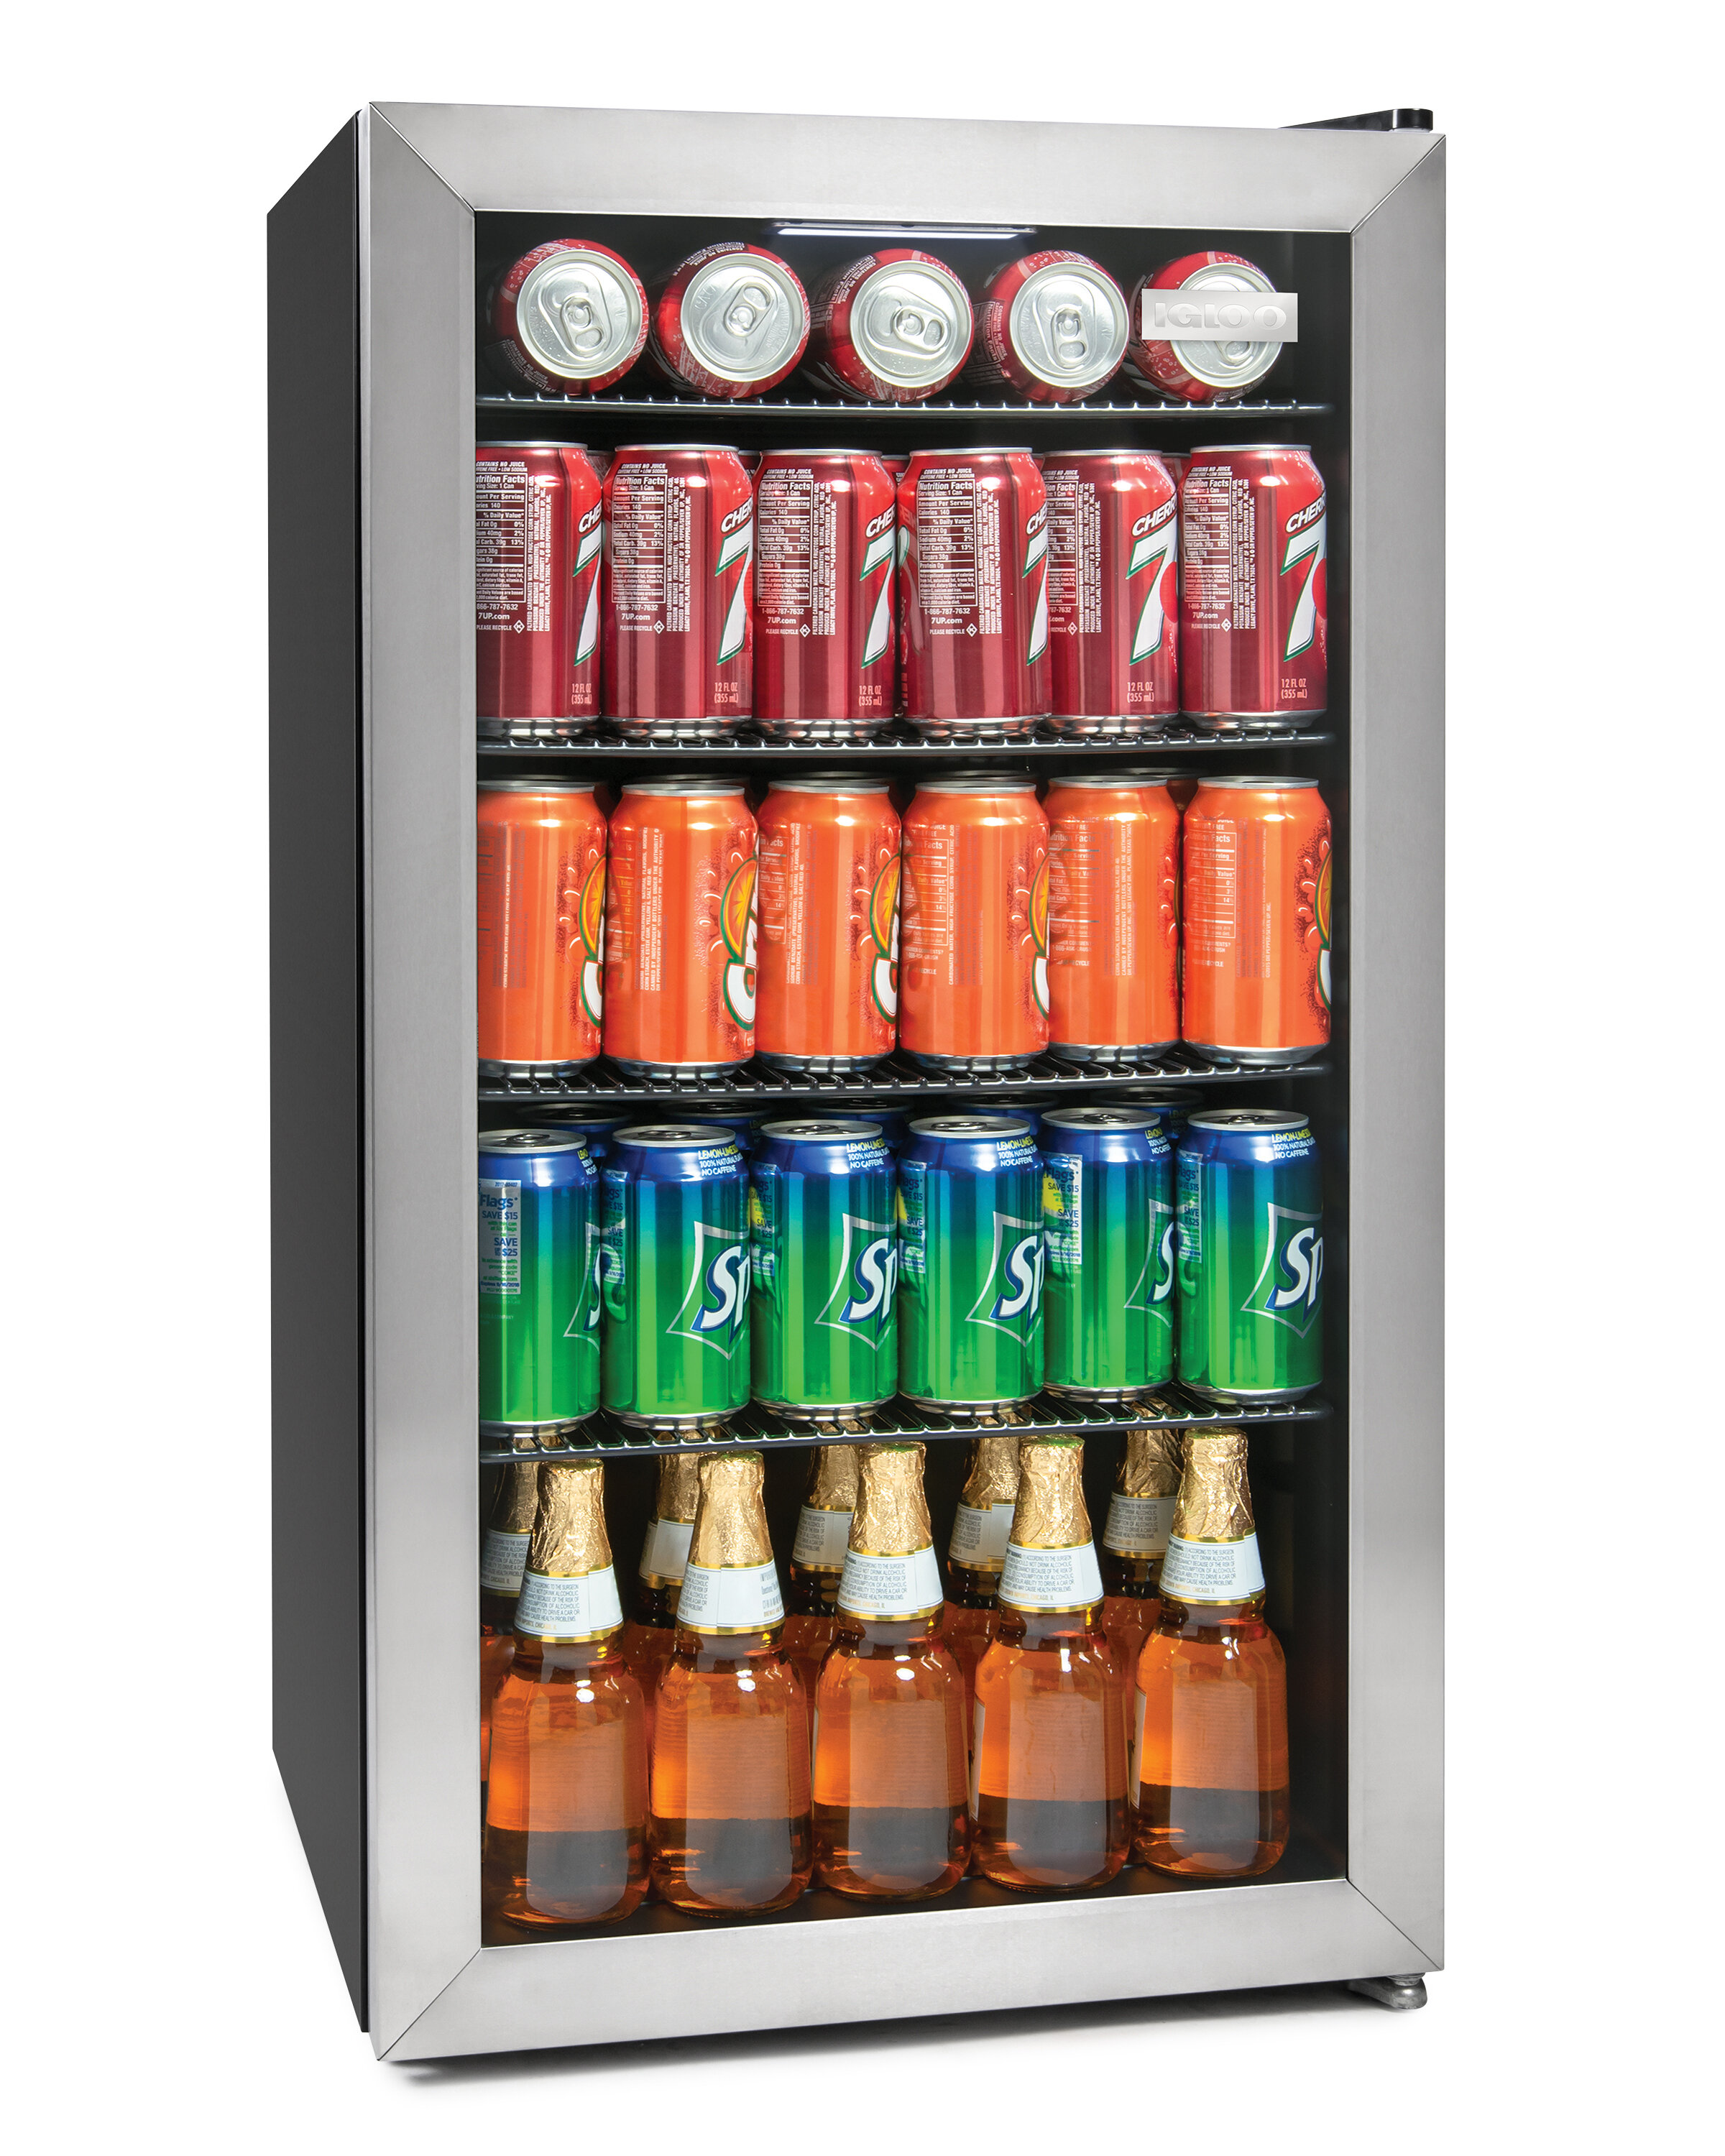 Igloo 3 5 Cu Ft 135 Can Capacity Stainless Steel Led Lighted Double Pane Glass Door Beverage Center Refrigerator And Cooler Reviews Wayfair